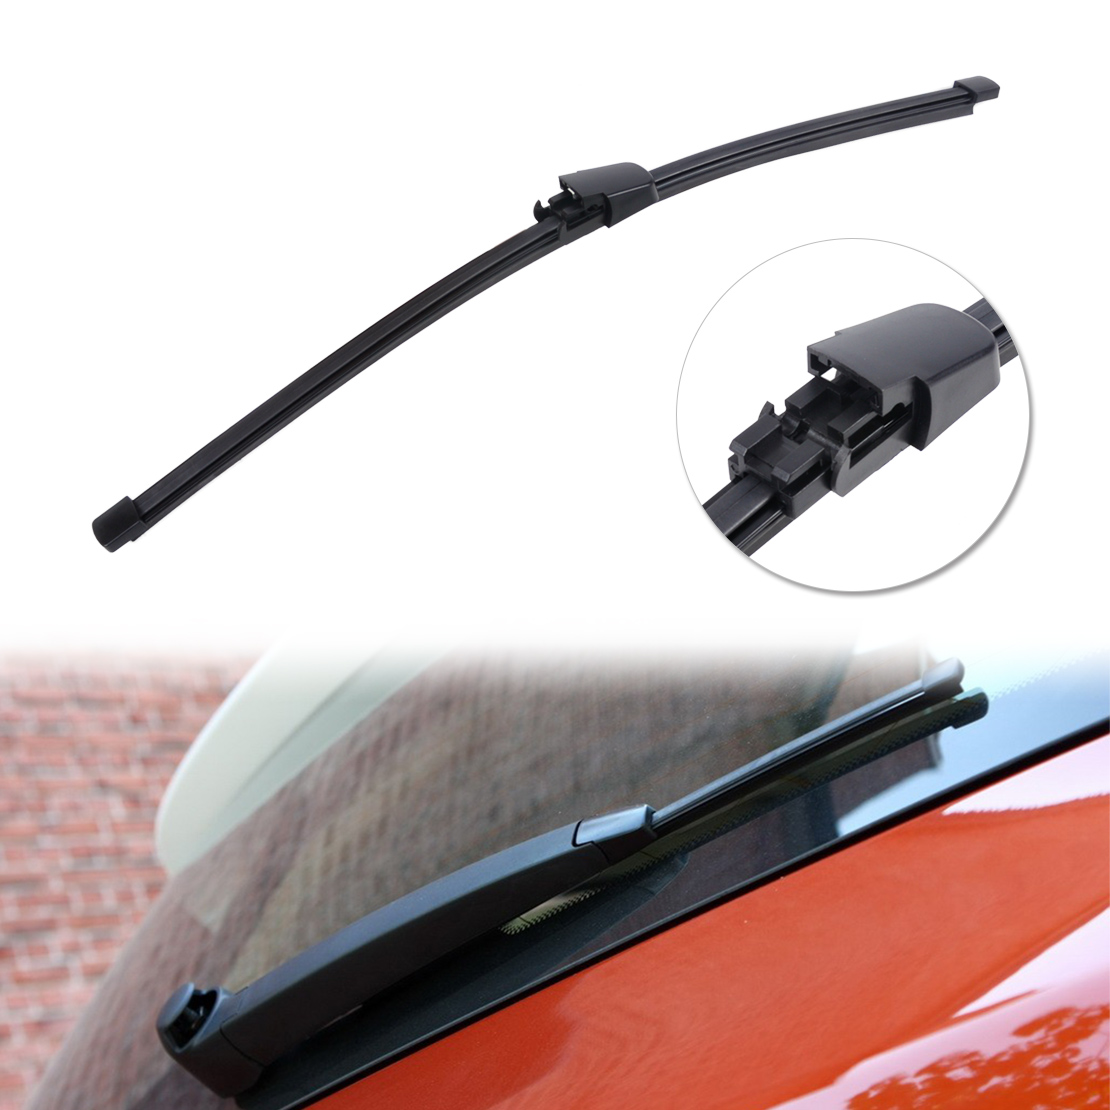 CITALL Rubber Rear Window Windscreen Wipers Windshield Wiper Blade For VW Polo 2009 2012 <font><b>2013</b></font> <font><b>Tiguan</b></font> 2008 2009 2010 2011 2012 image